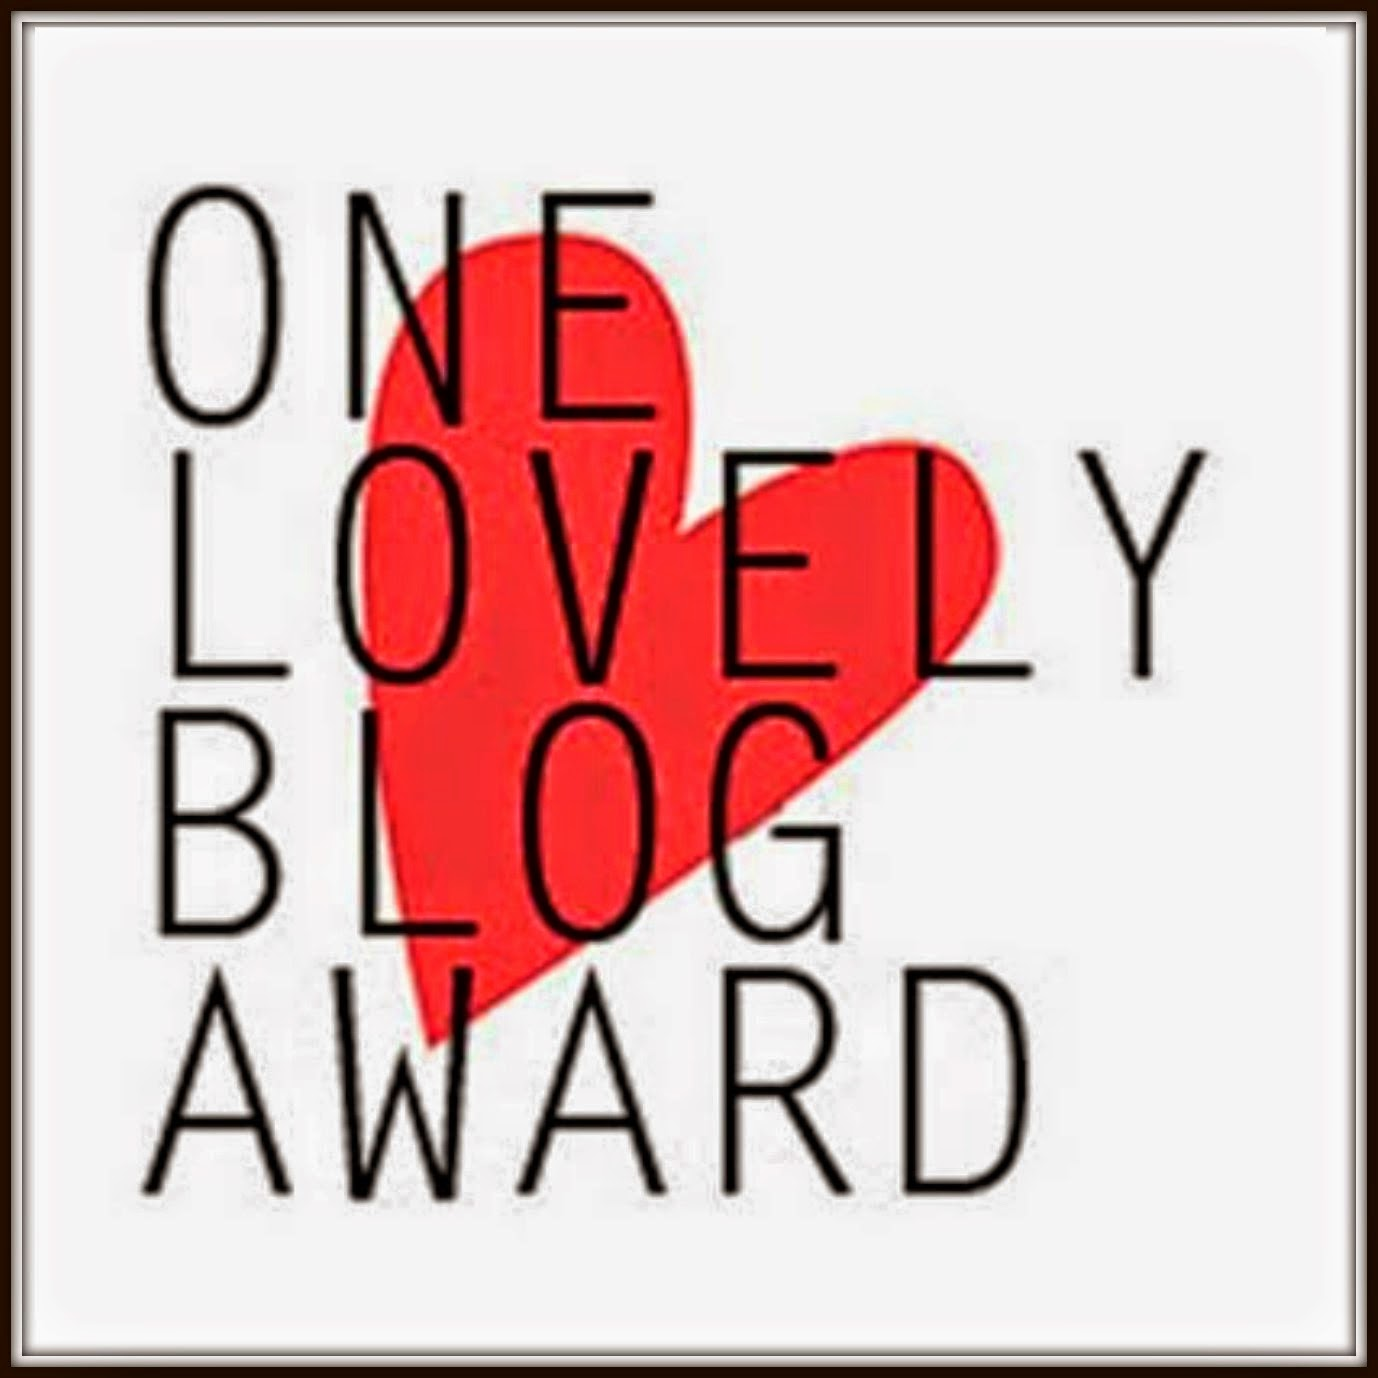 Imagen del premio Premio One Lovely Blog Award.